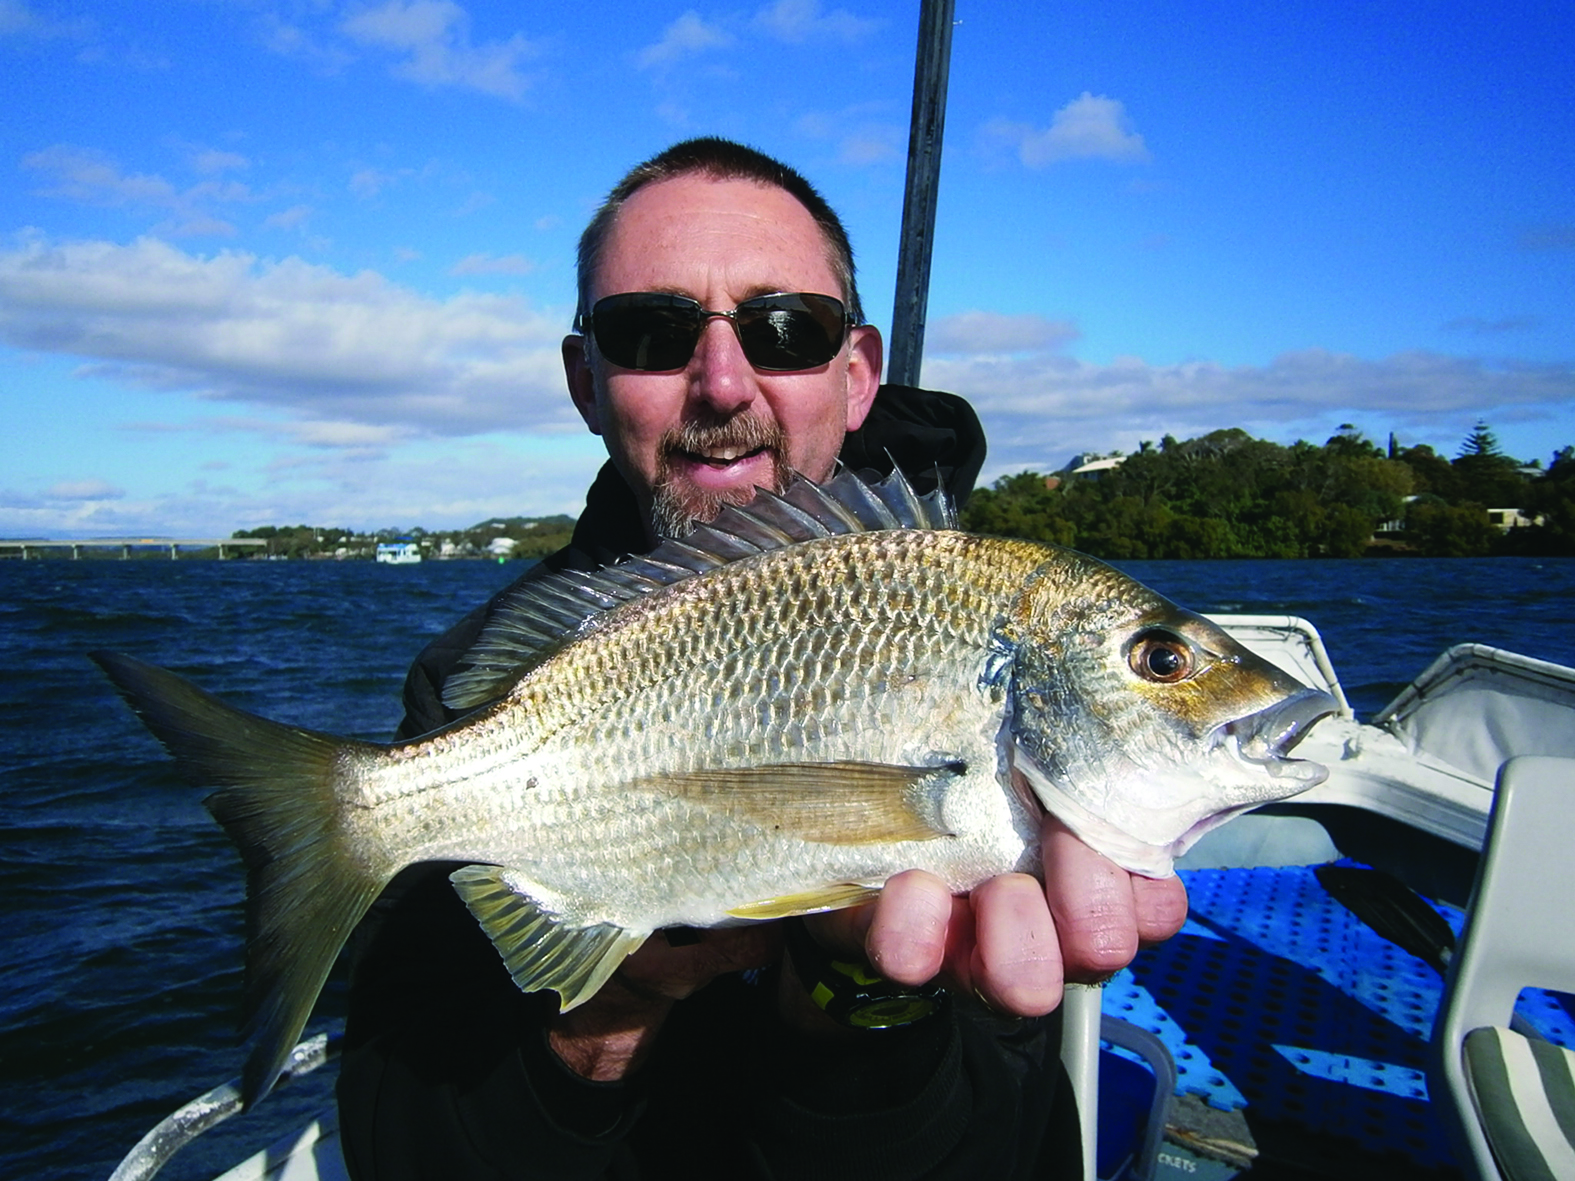 Plenty of big bream should be around the river mouths over the next few months.